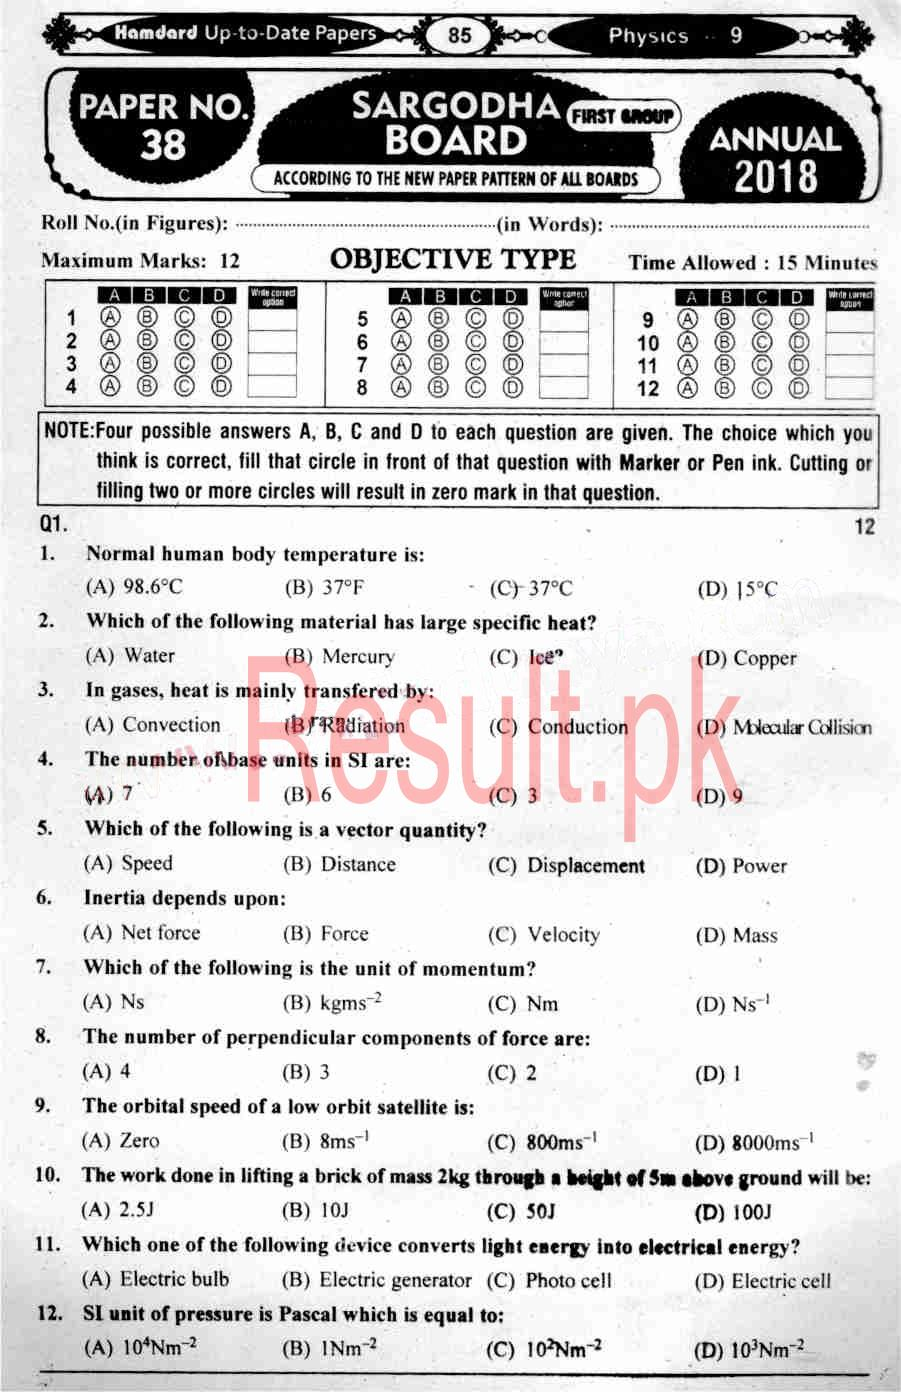 BISE Sargodha Board Past Papers 2019 Matric, SSC Part 1